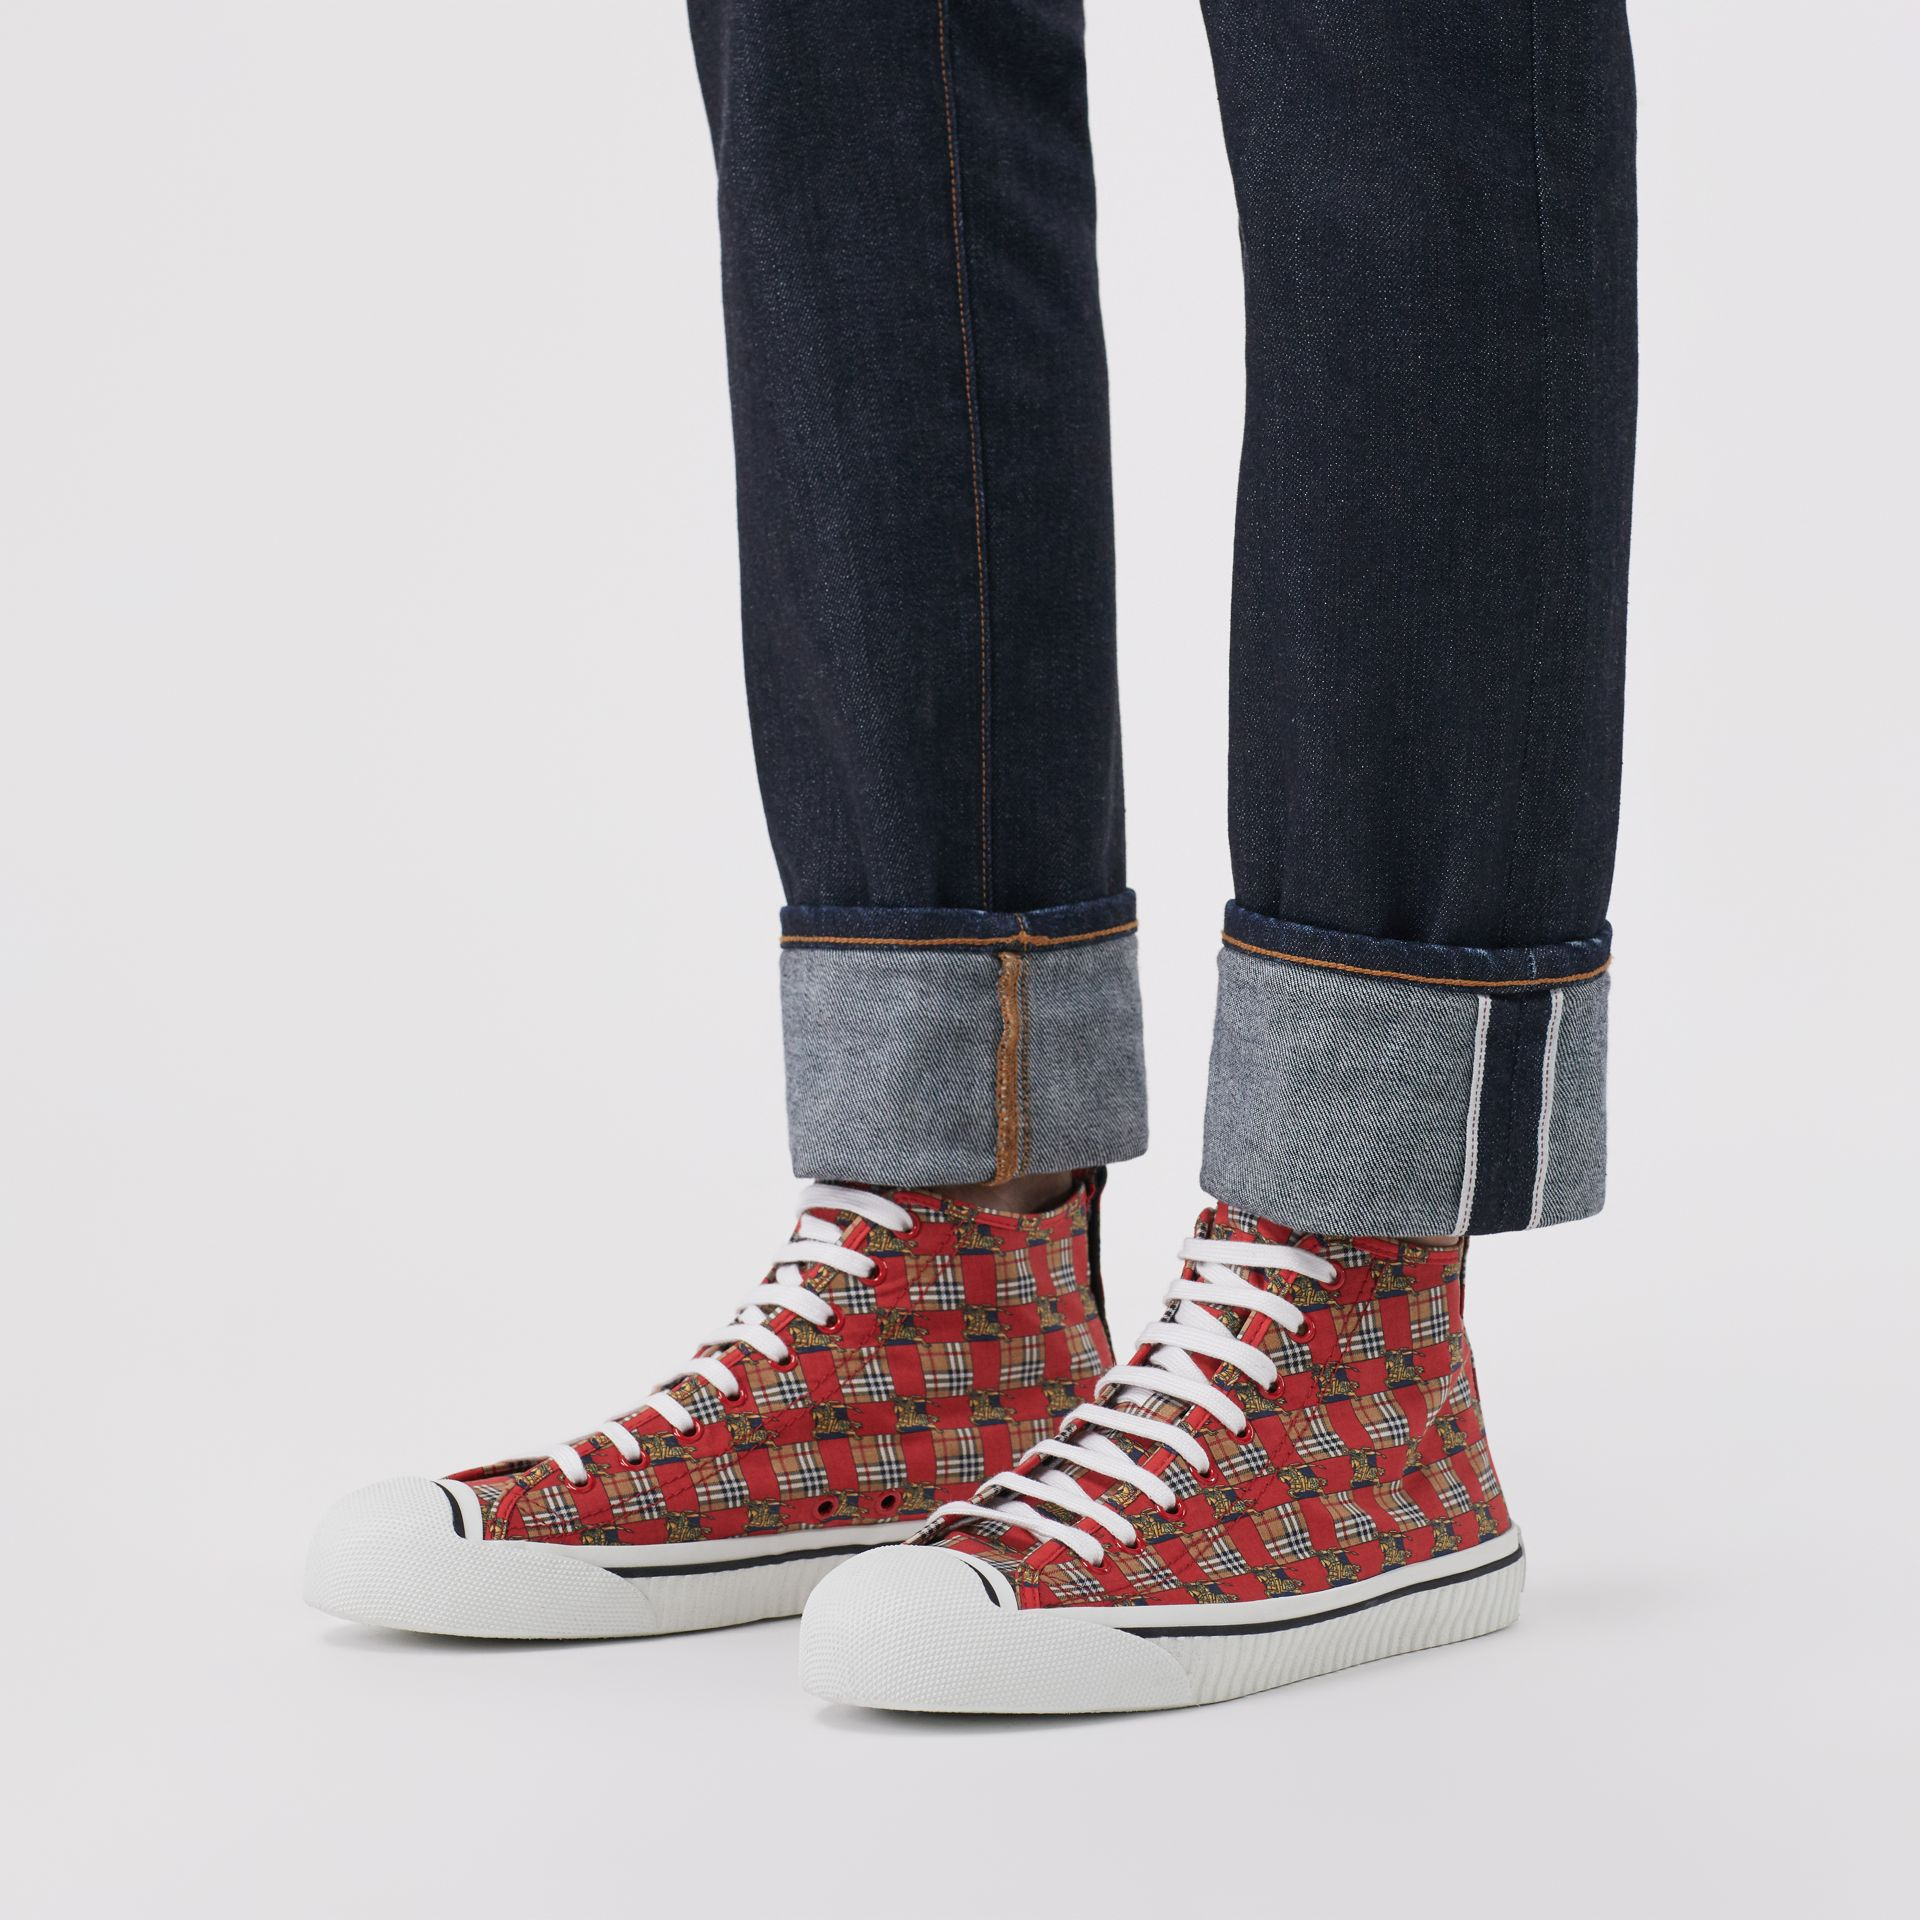 Tiled Archive Print Cotton High-top Sneakers in Bright Red | Burberry United Kingdom - gallery image 2